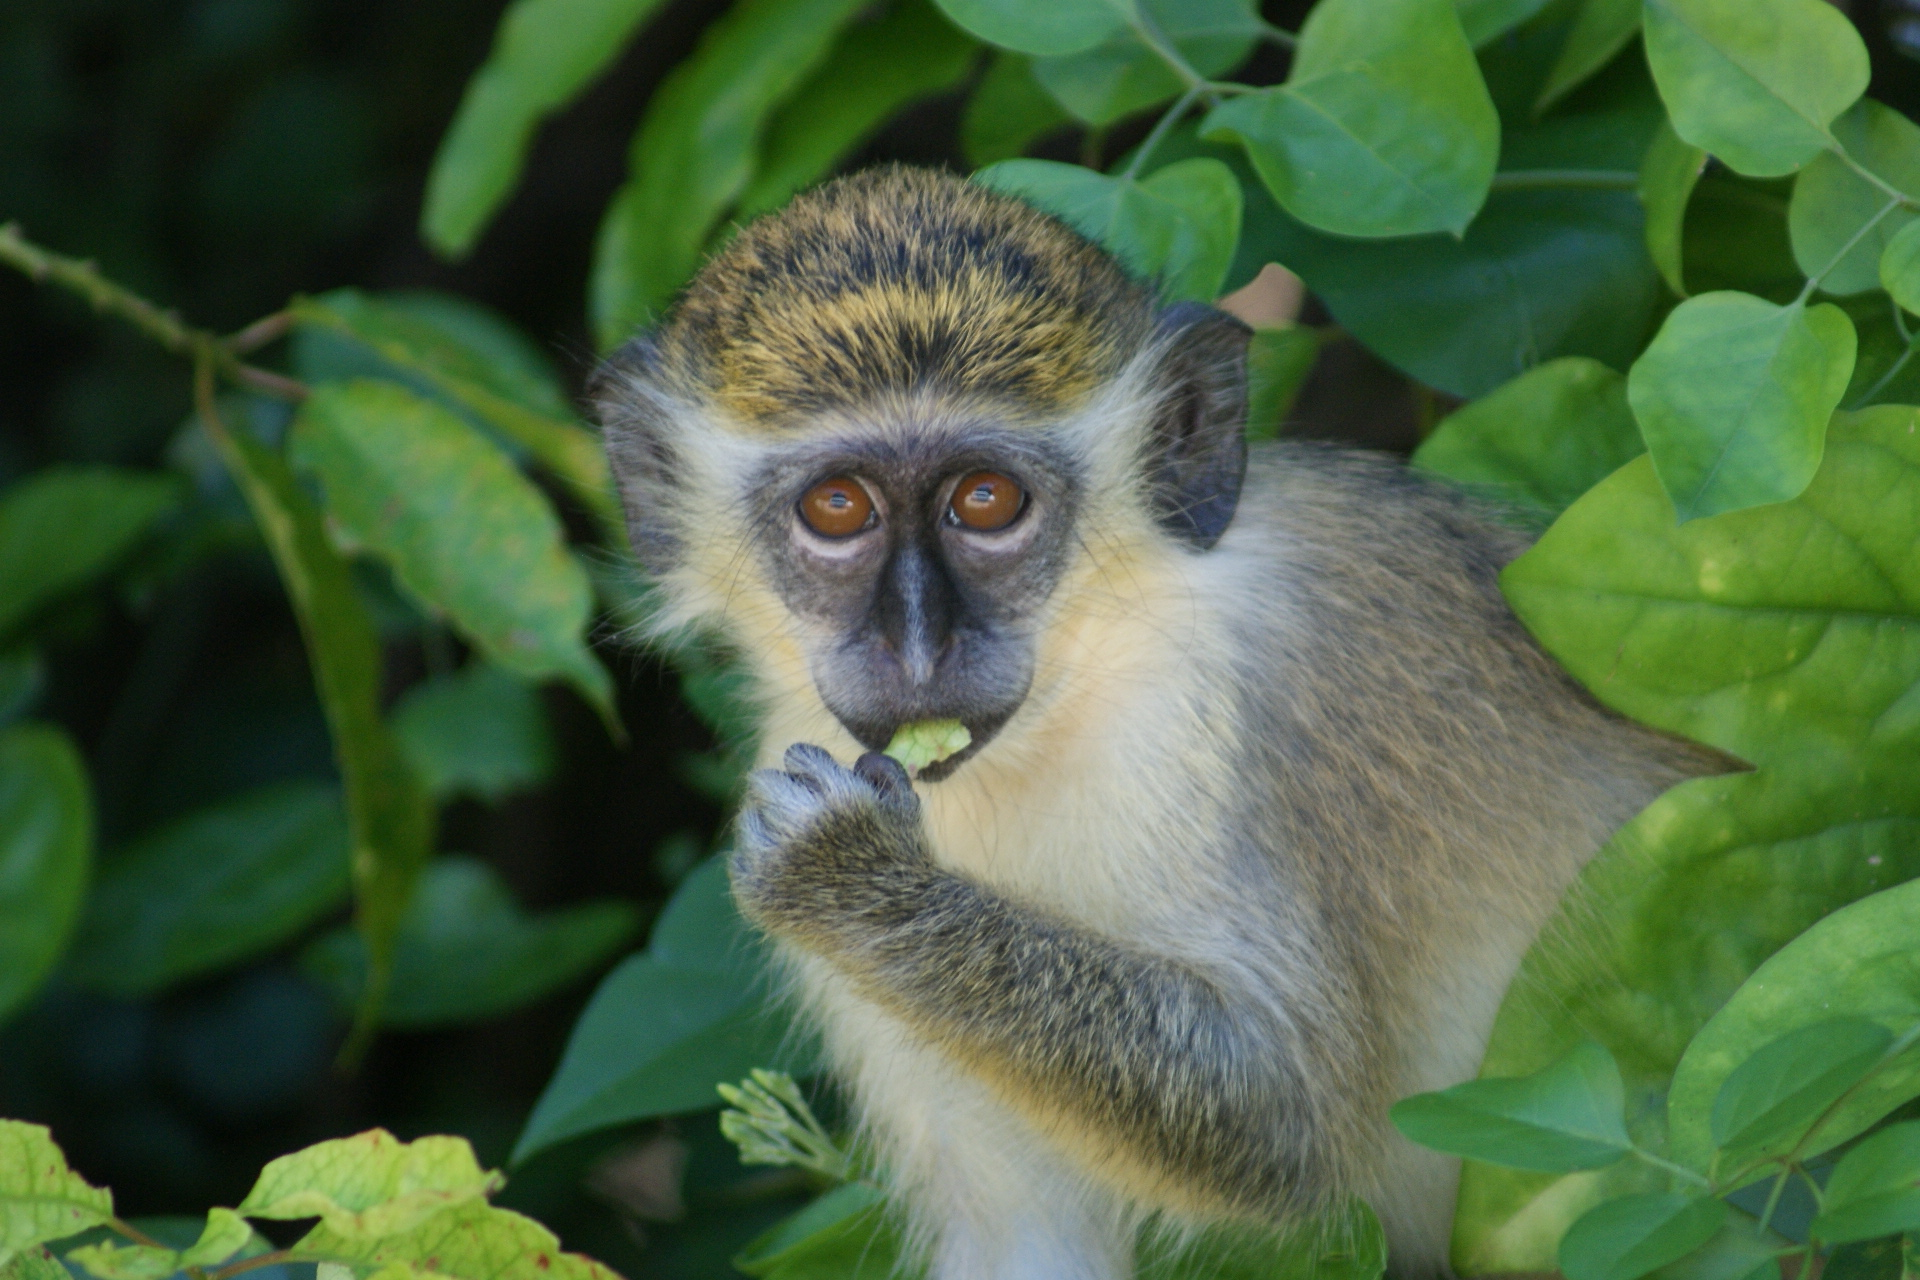 File:Chlorocebus Aethiops (Green Monkey).JPG - Wikimedia Commons